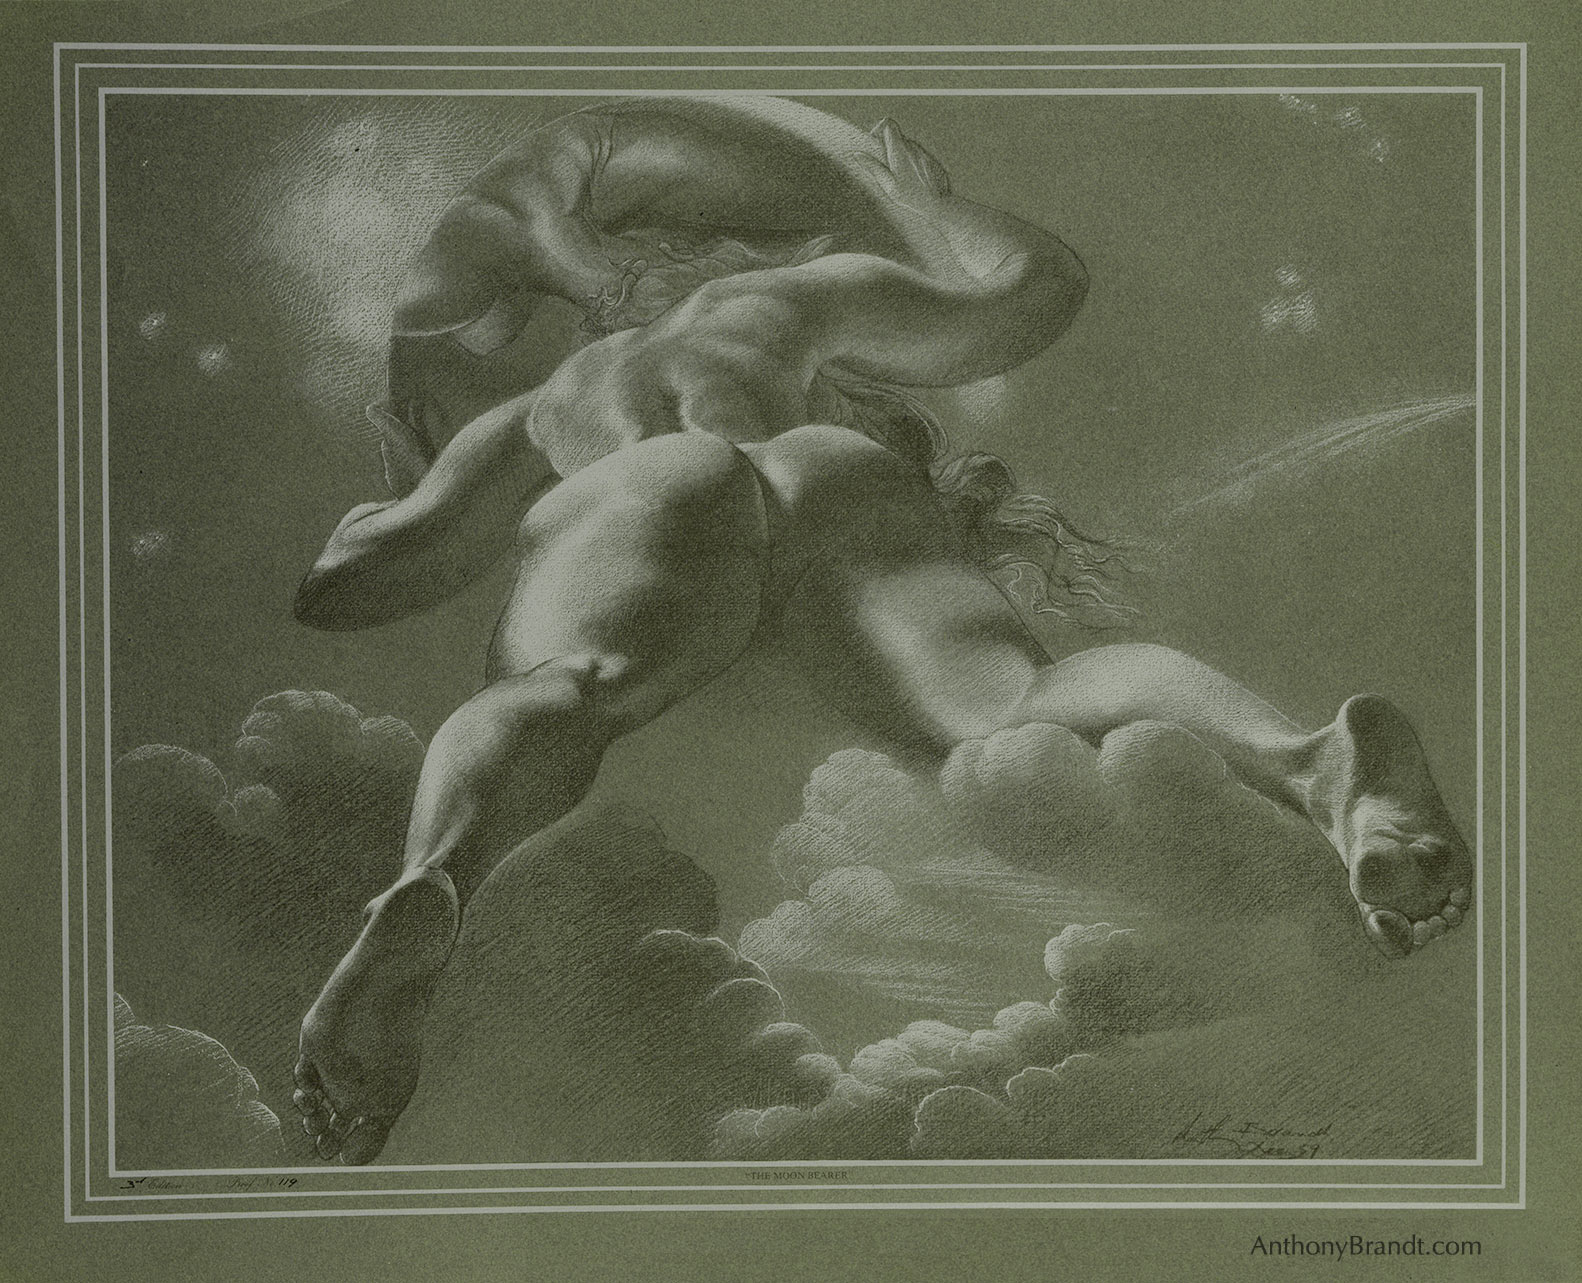 Limited Edition Lithographic Print - ' The Moon Dealer ' by Artist Anthony Brandt , The Modern Michelangelo